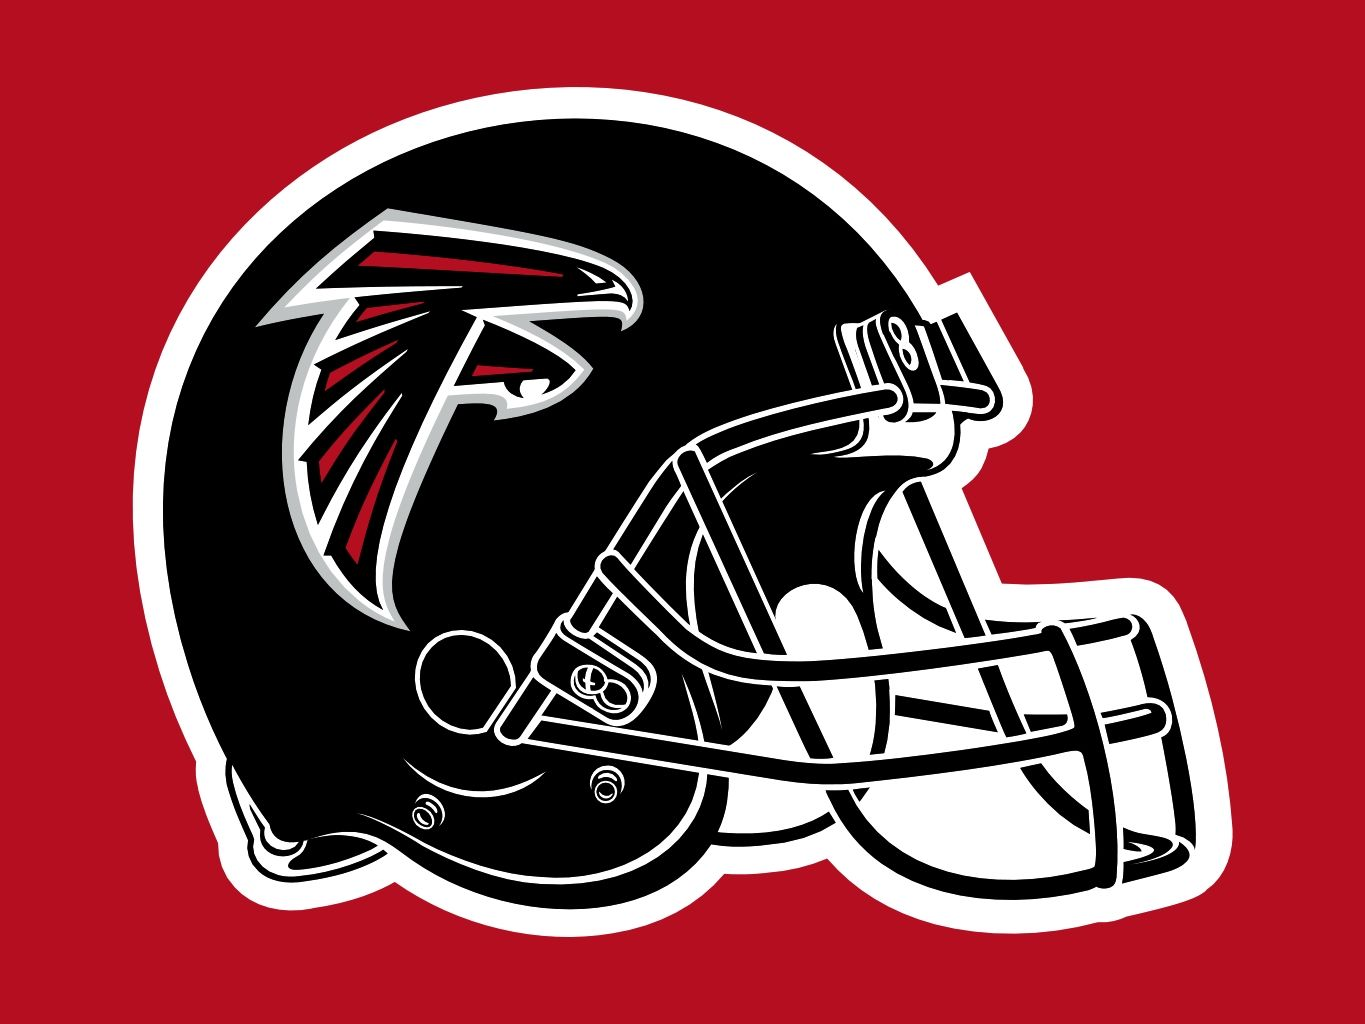 Atlanta Falcons Images Atlanta Falcons Logo Atlanta Falcons Helmet Football Helmets Nfl Football Helmets